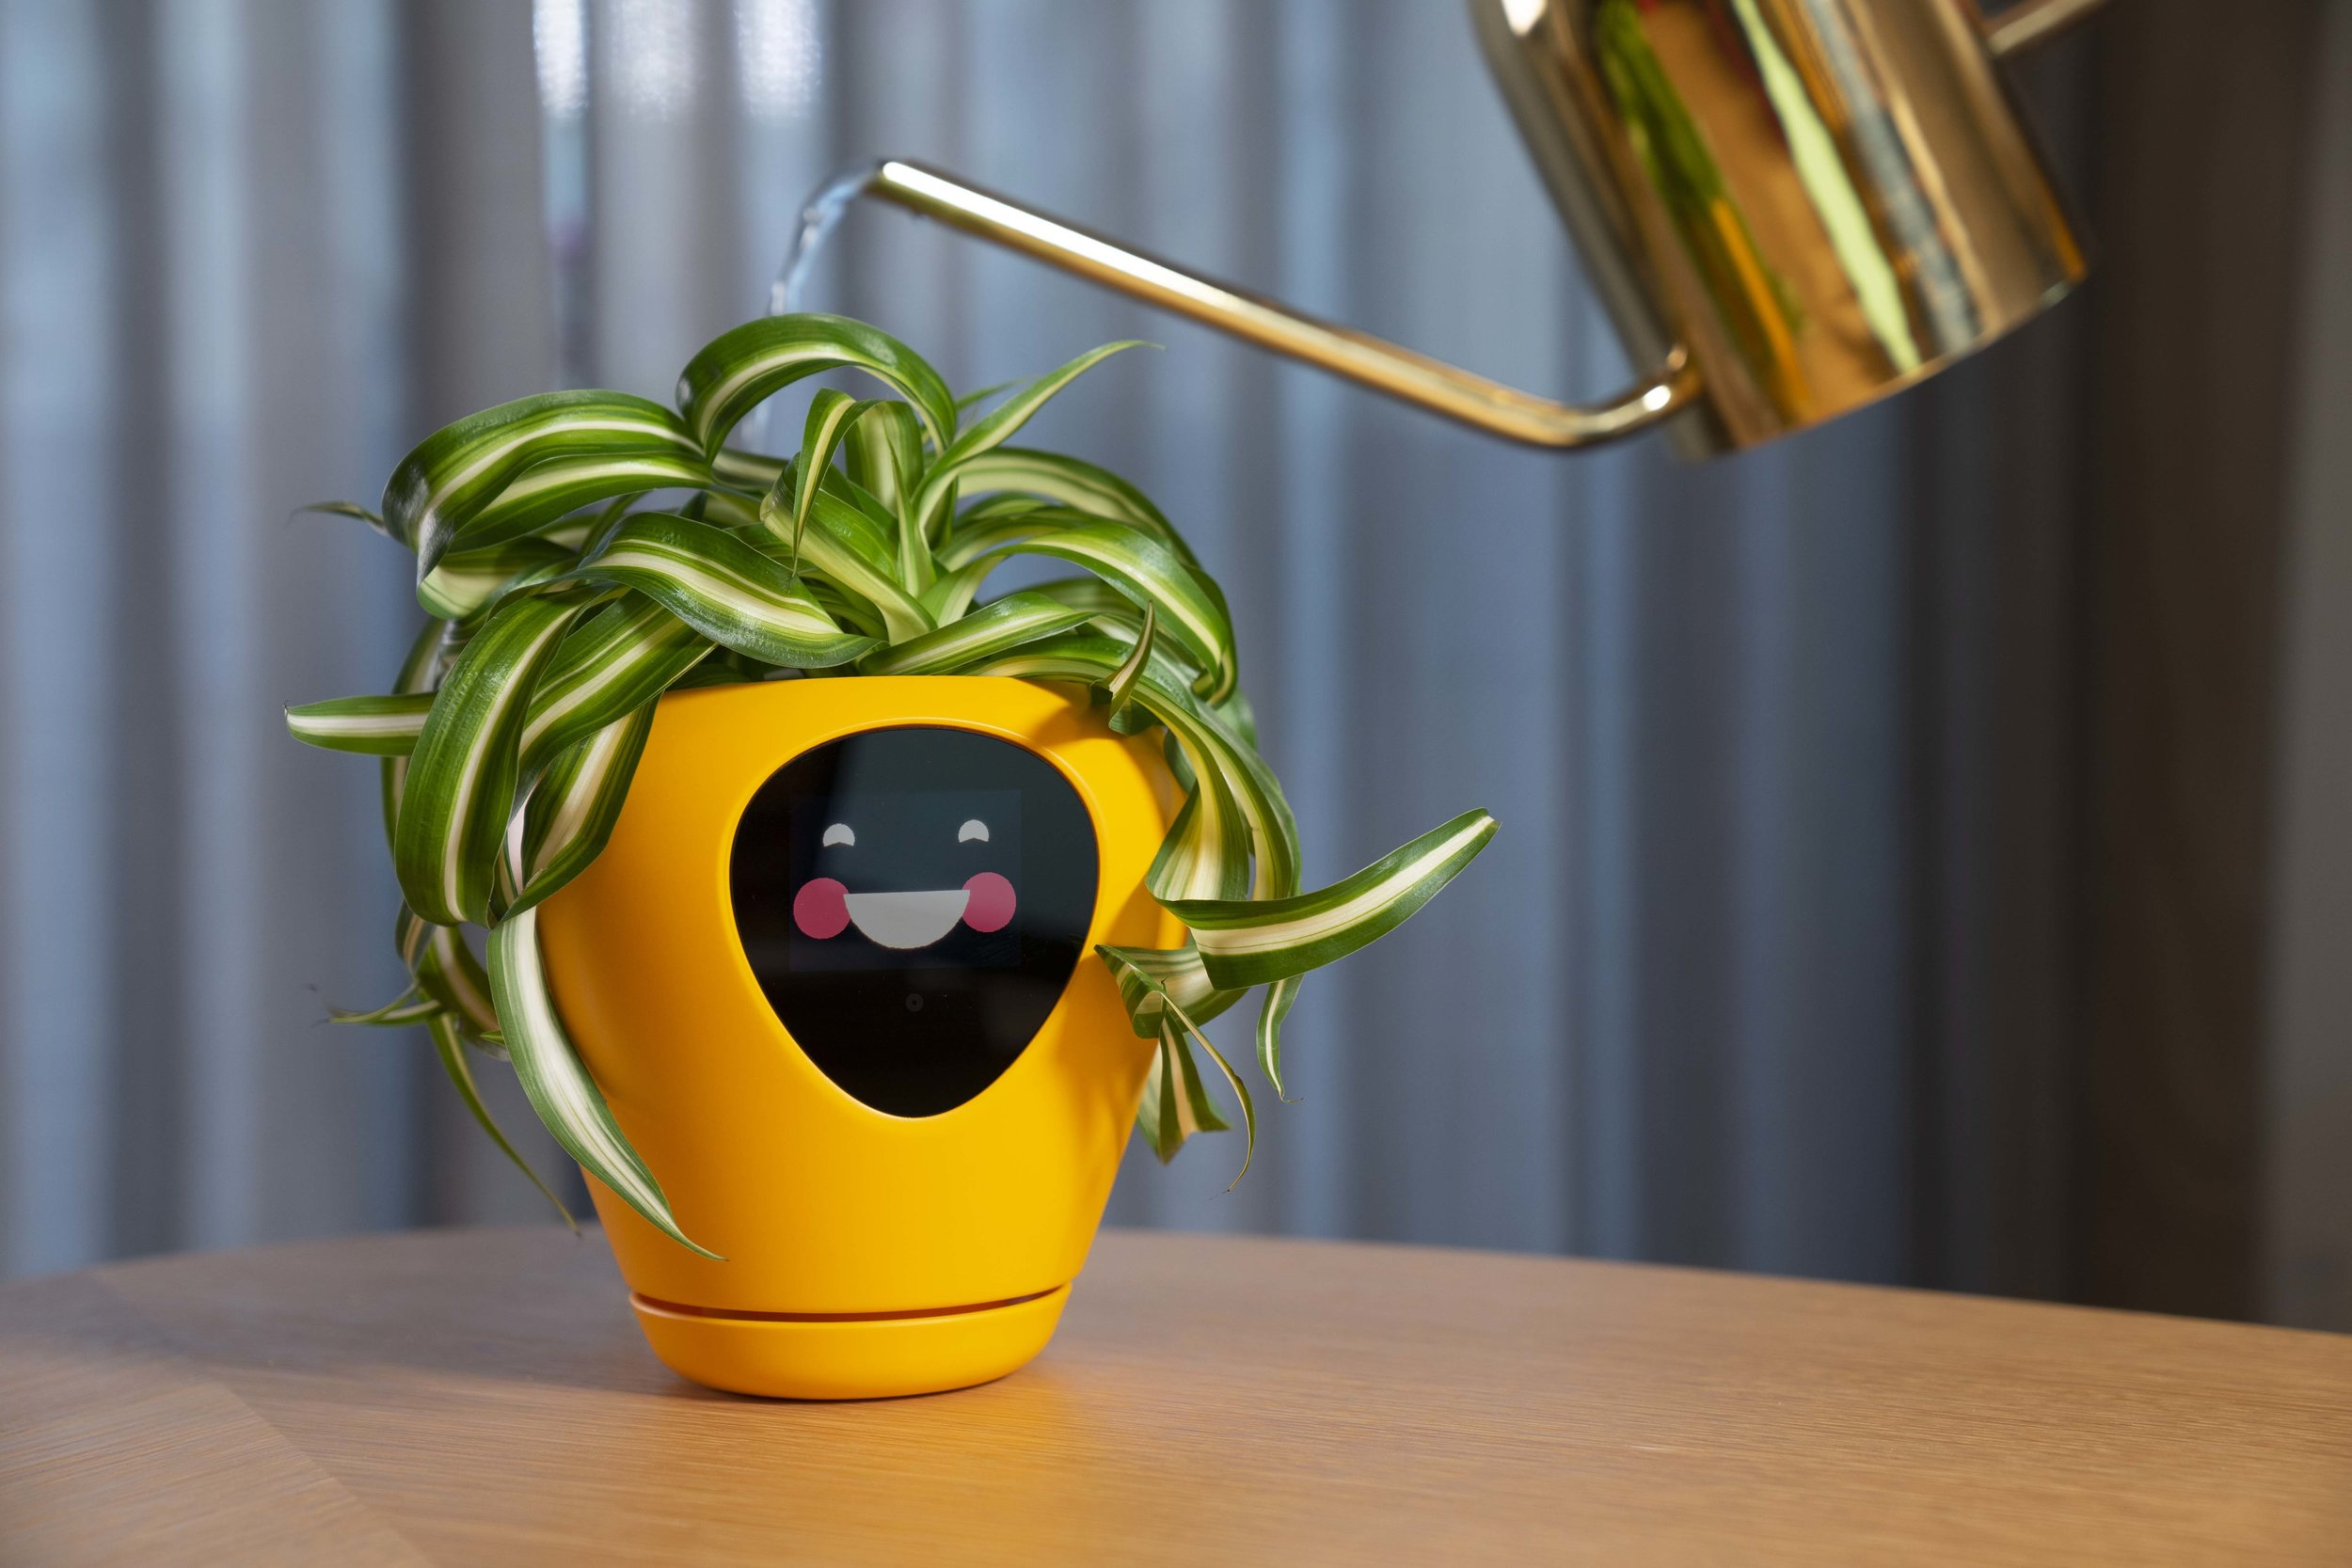 Smart planter has a screen that displays your plant's 'feelings'